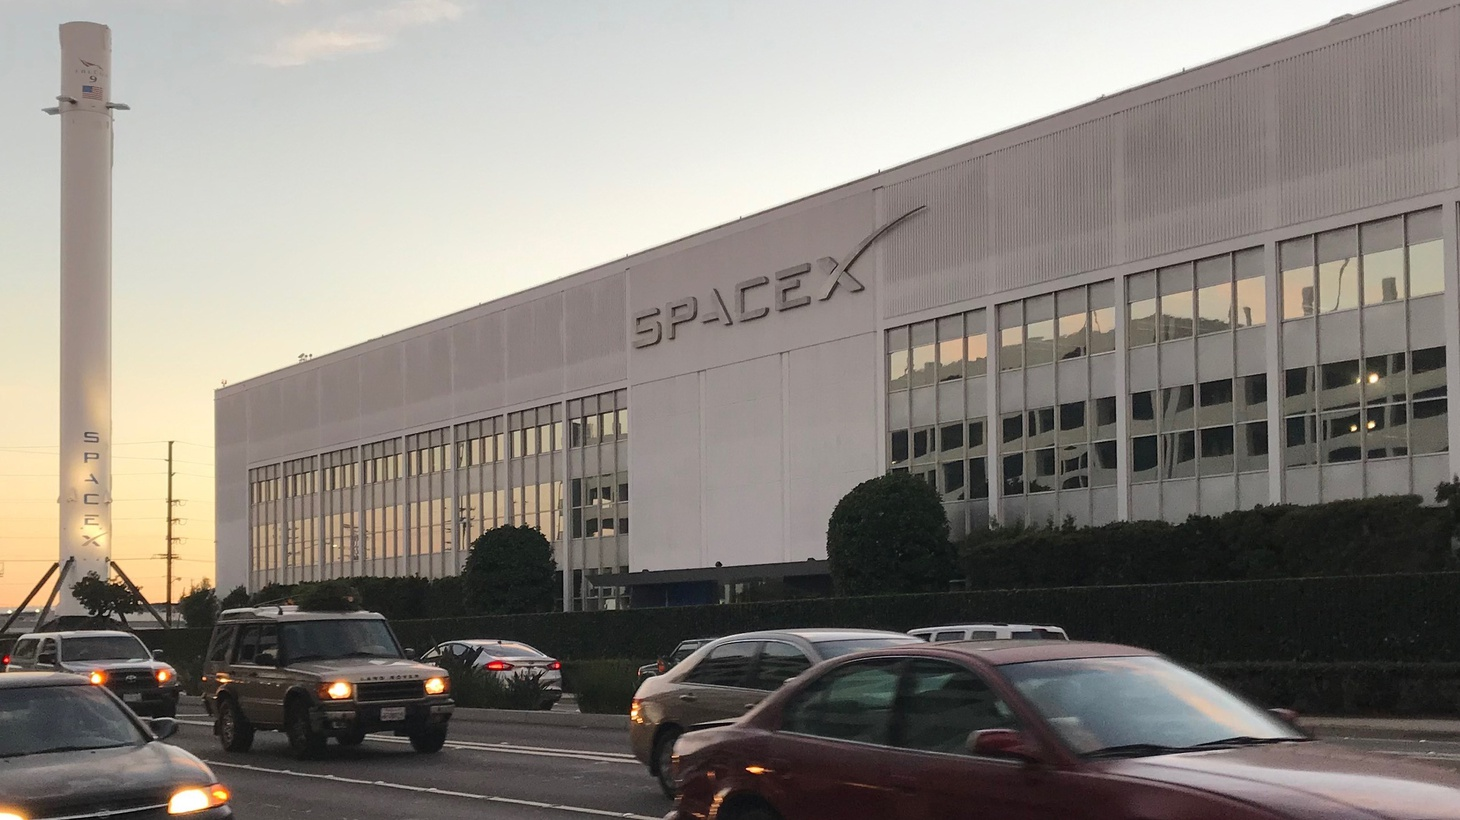 Reaching for the skies. From the Boring Company lot you can see the SpaceX Falcon 9 rocket.